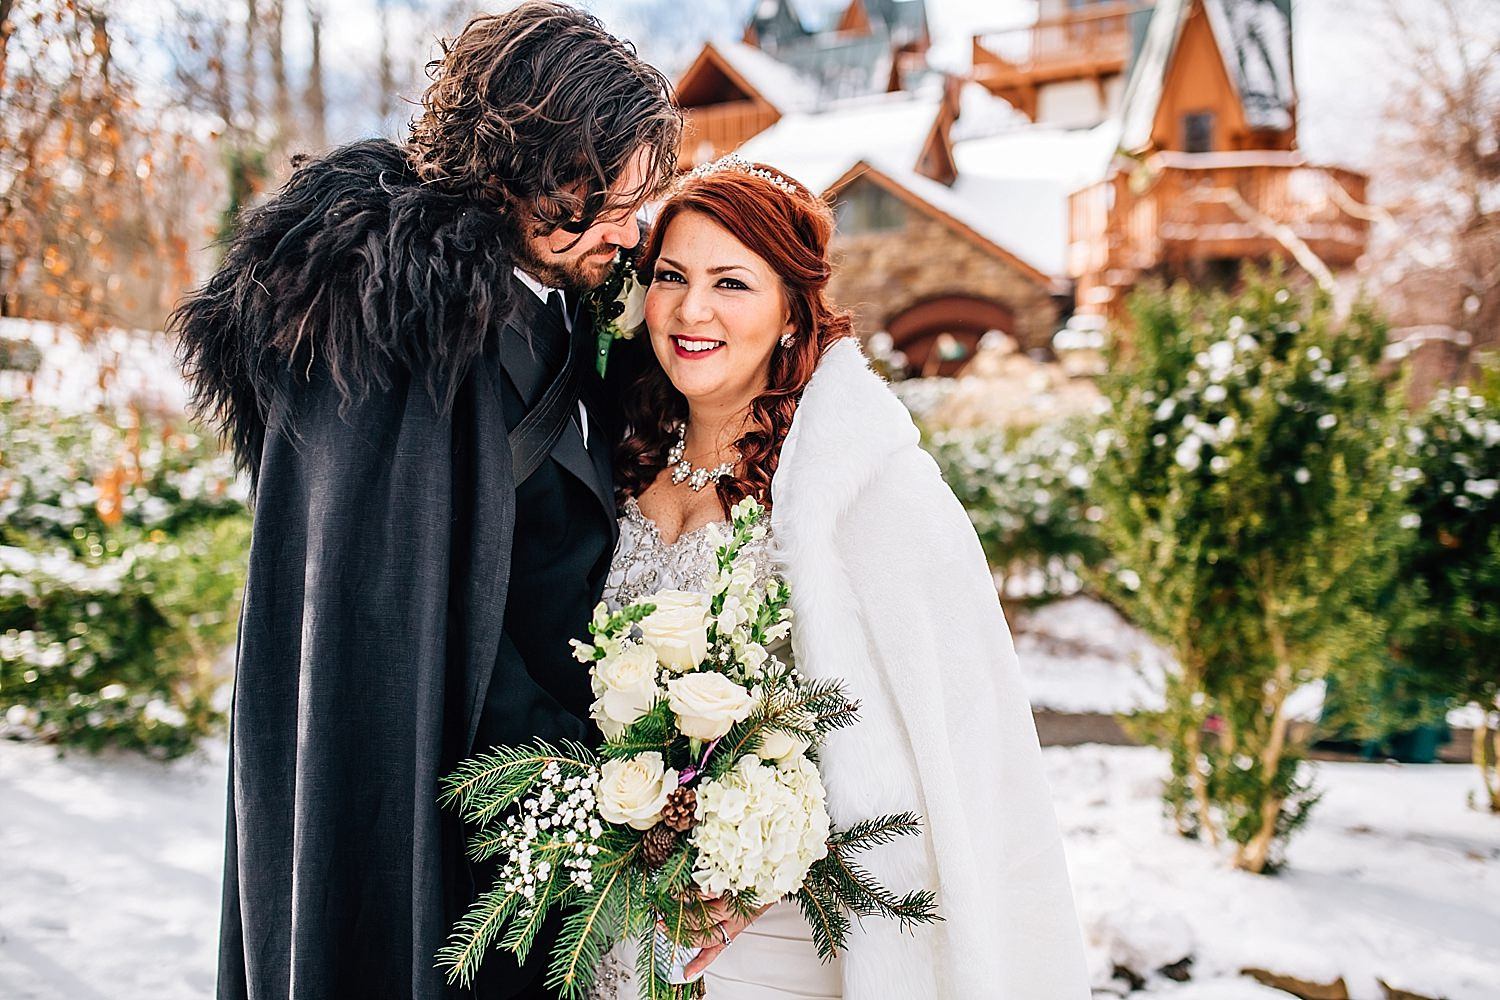 game of thrones inspired wedding at landolls mohican castle